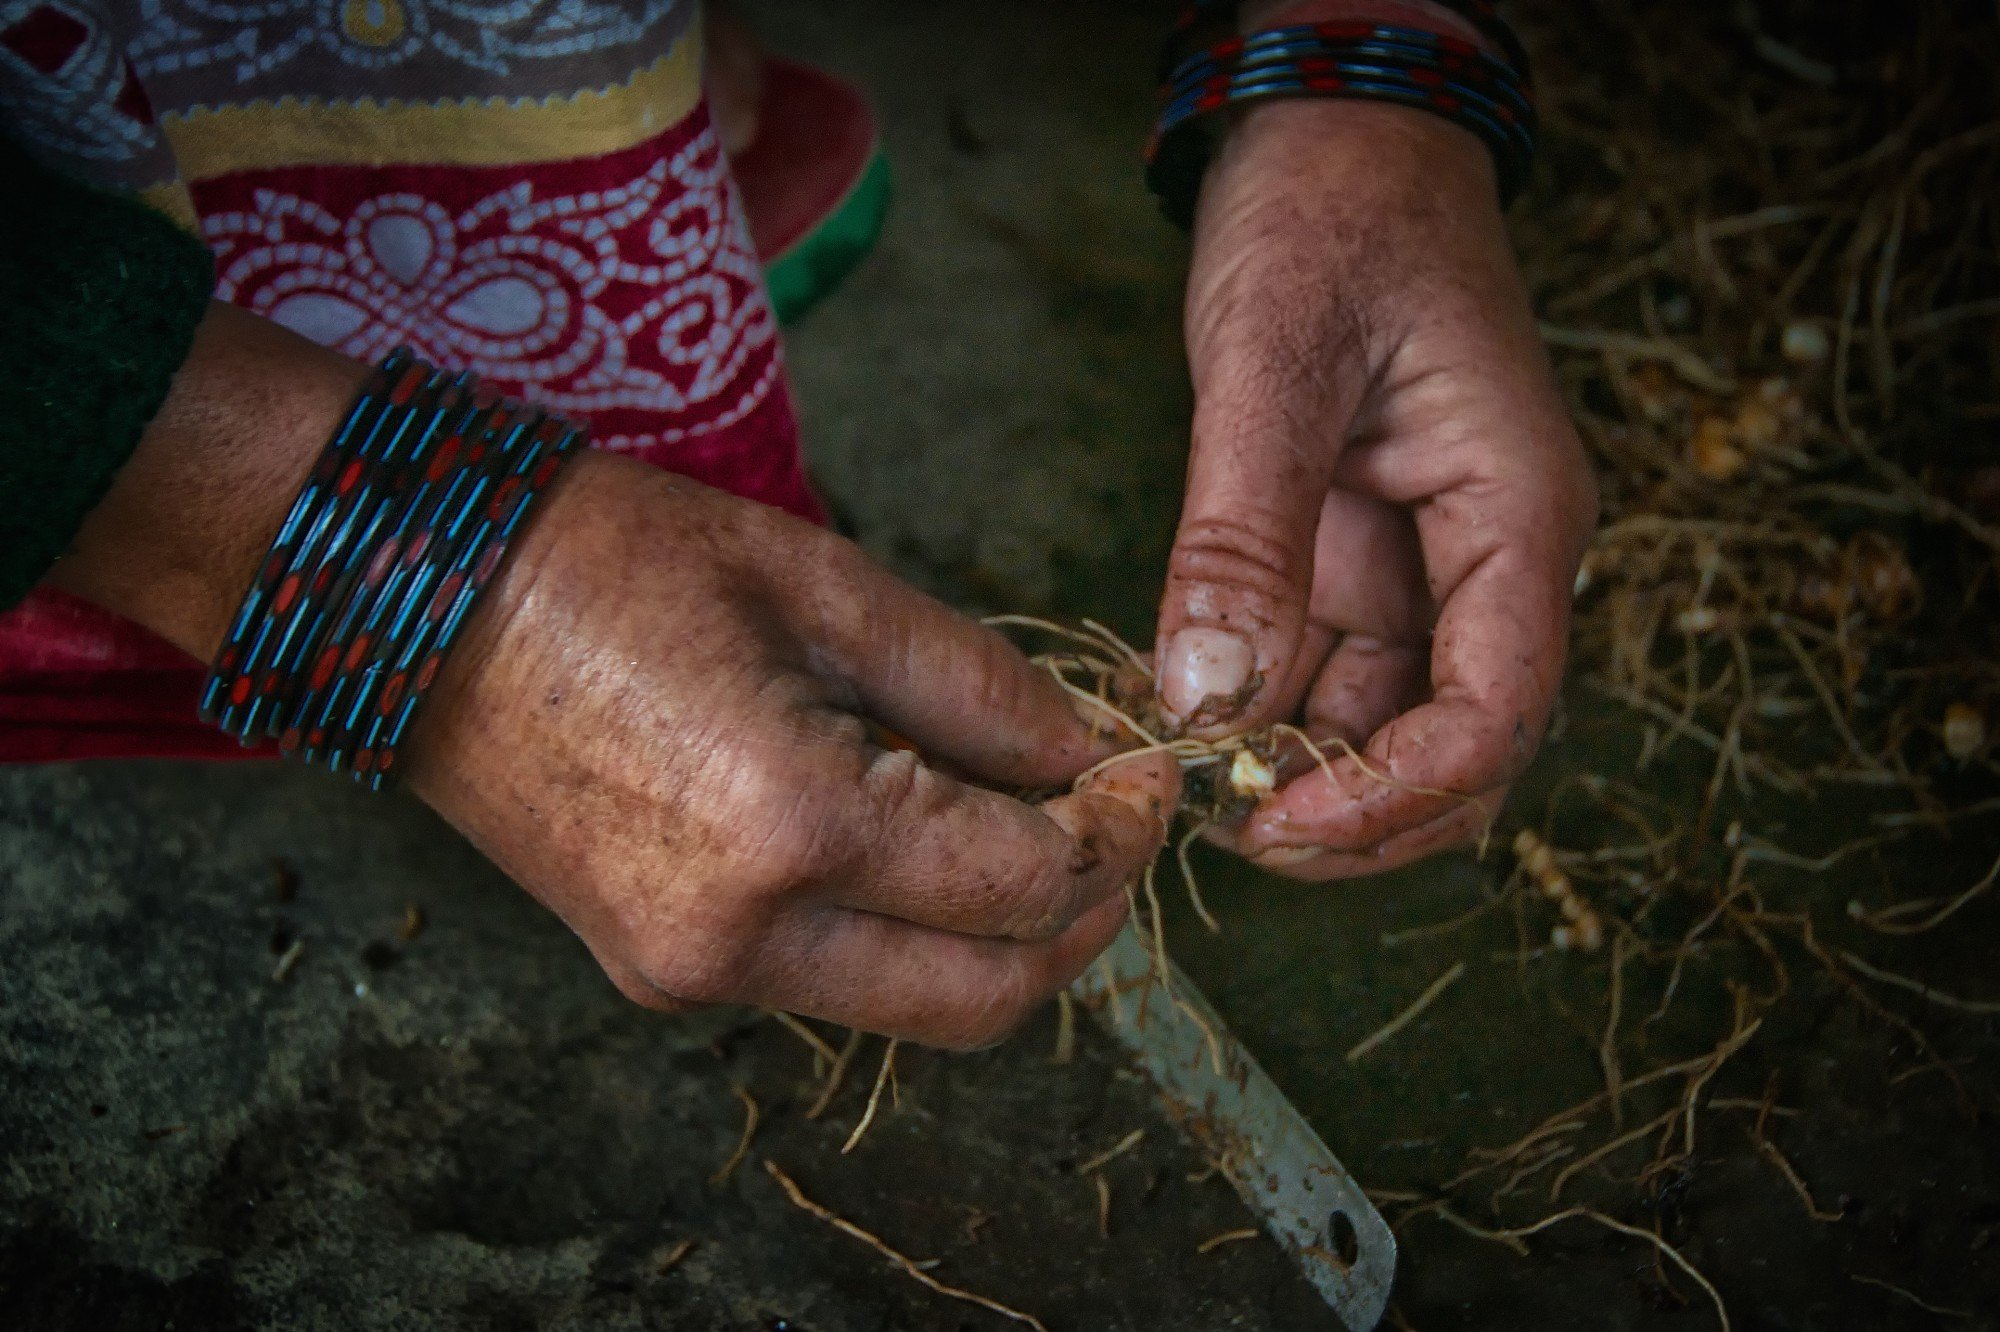 Trimming tumeric for later resale in Dwali.